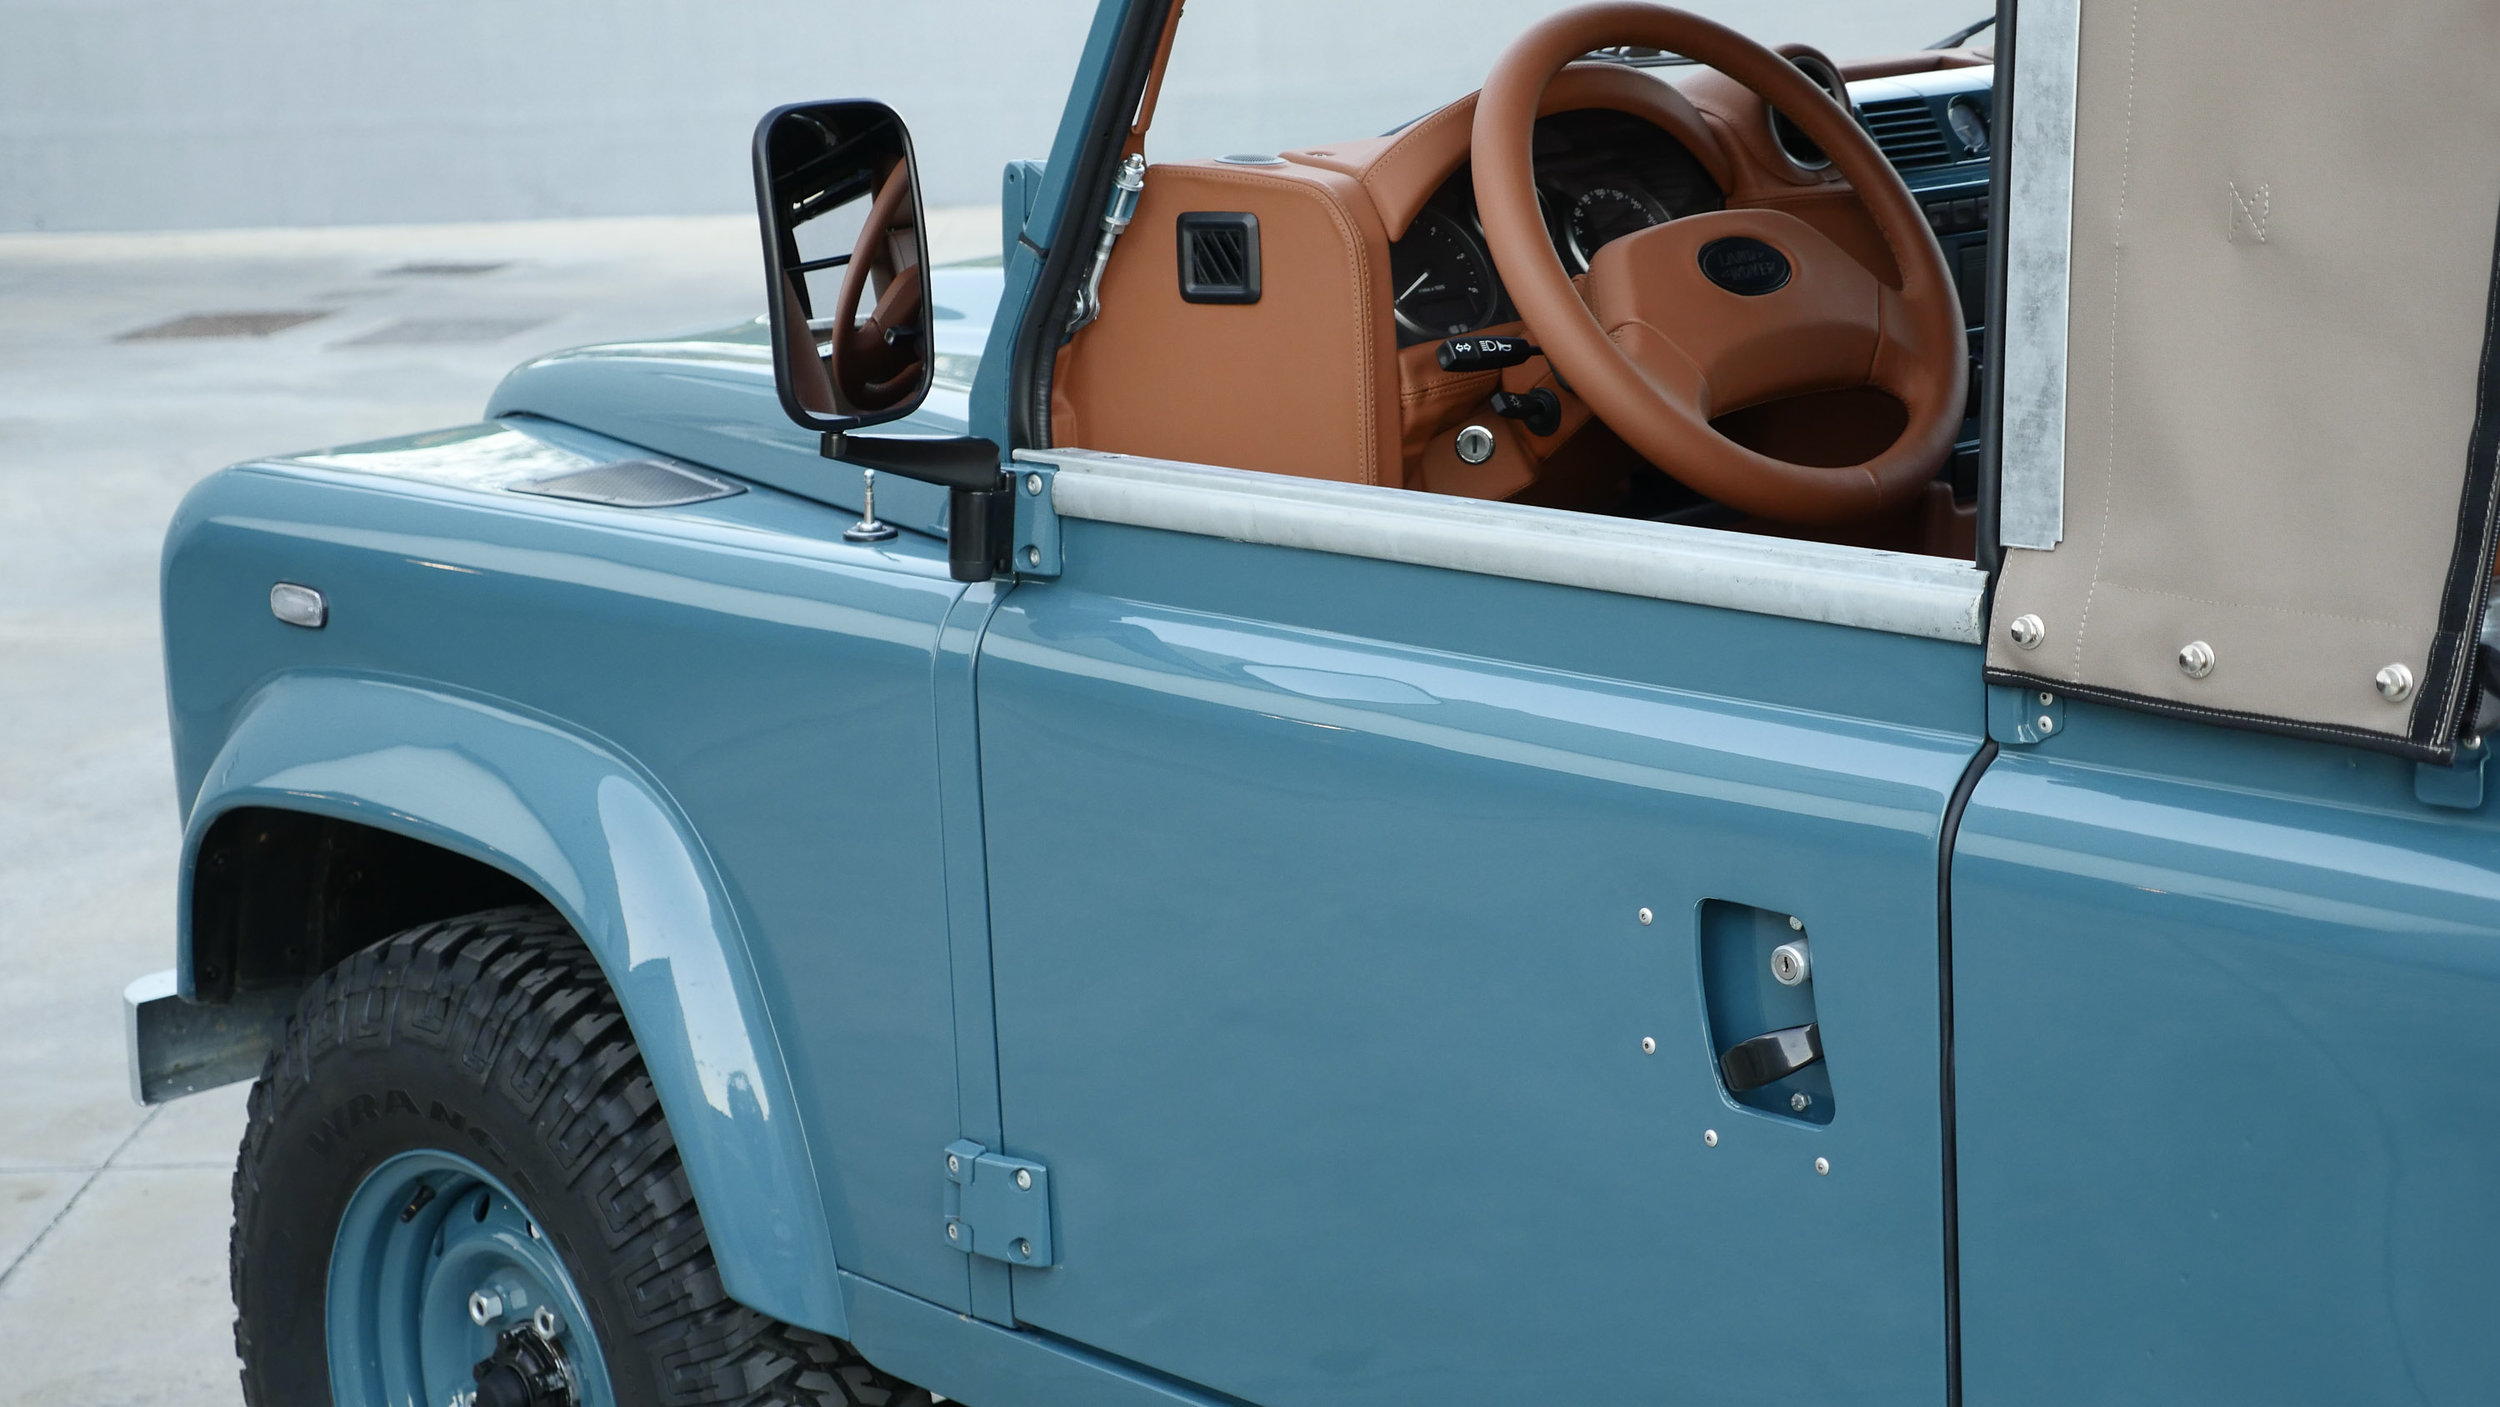 Coolnvntage Land Rover D90 Heritage (171 of 176).jpg